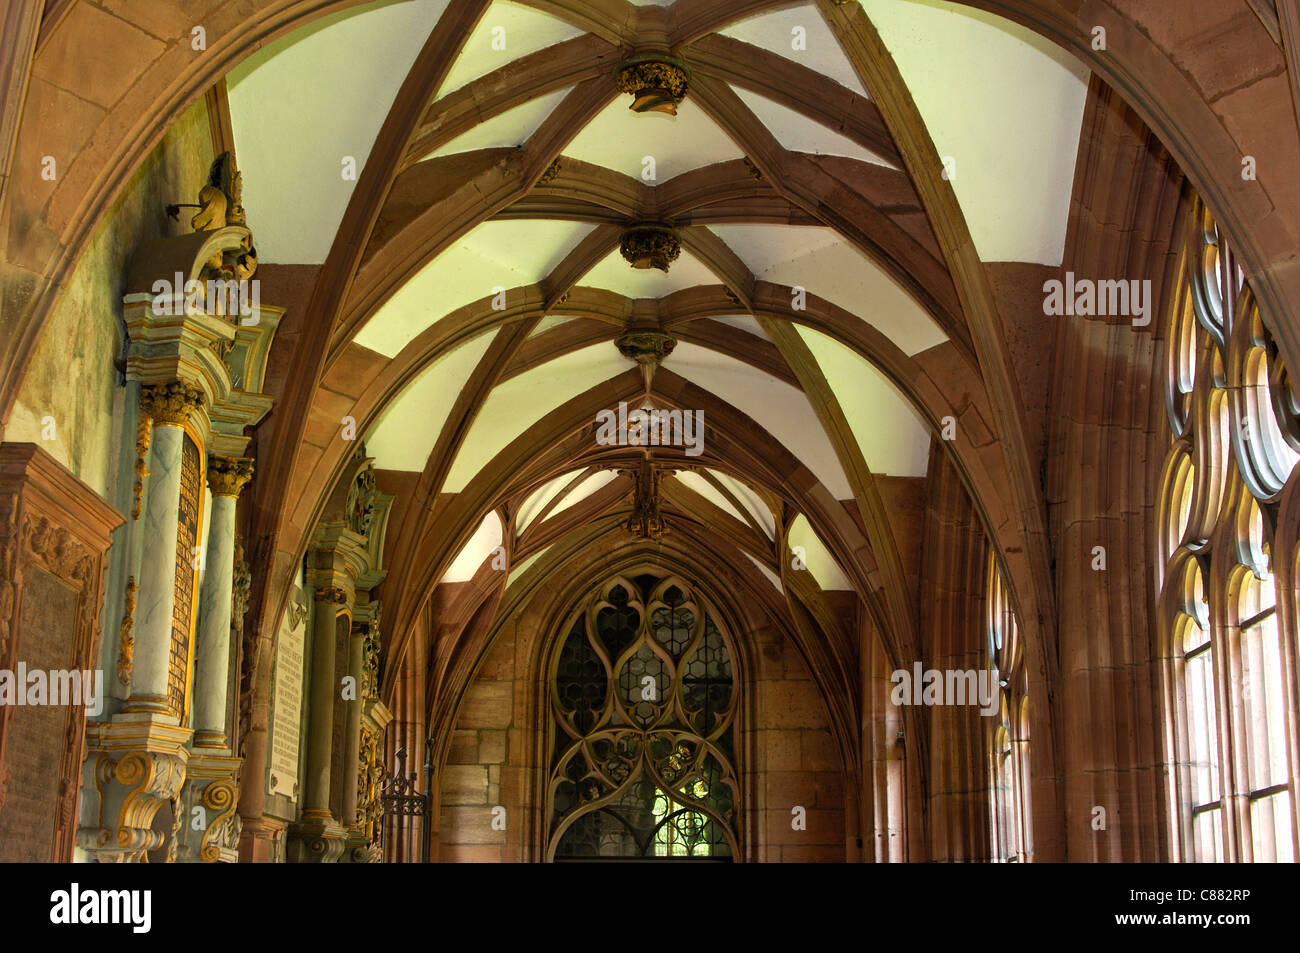 gothic rib-vault ceiling in the cloister of the basel münster